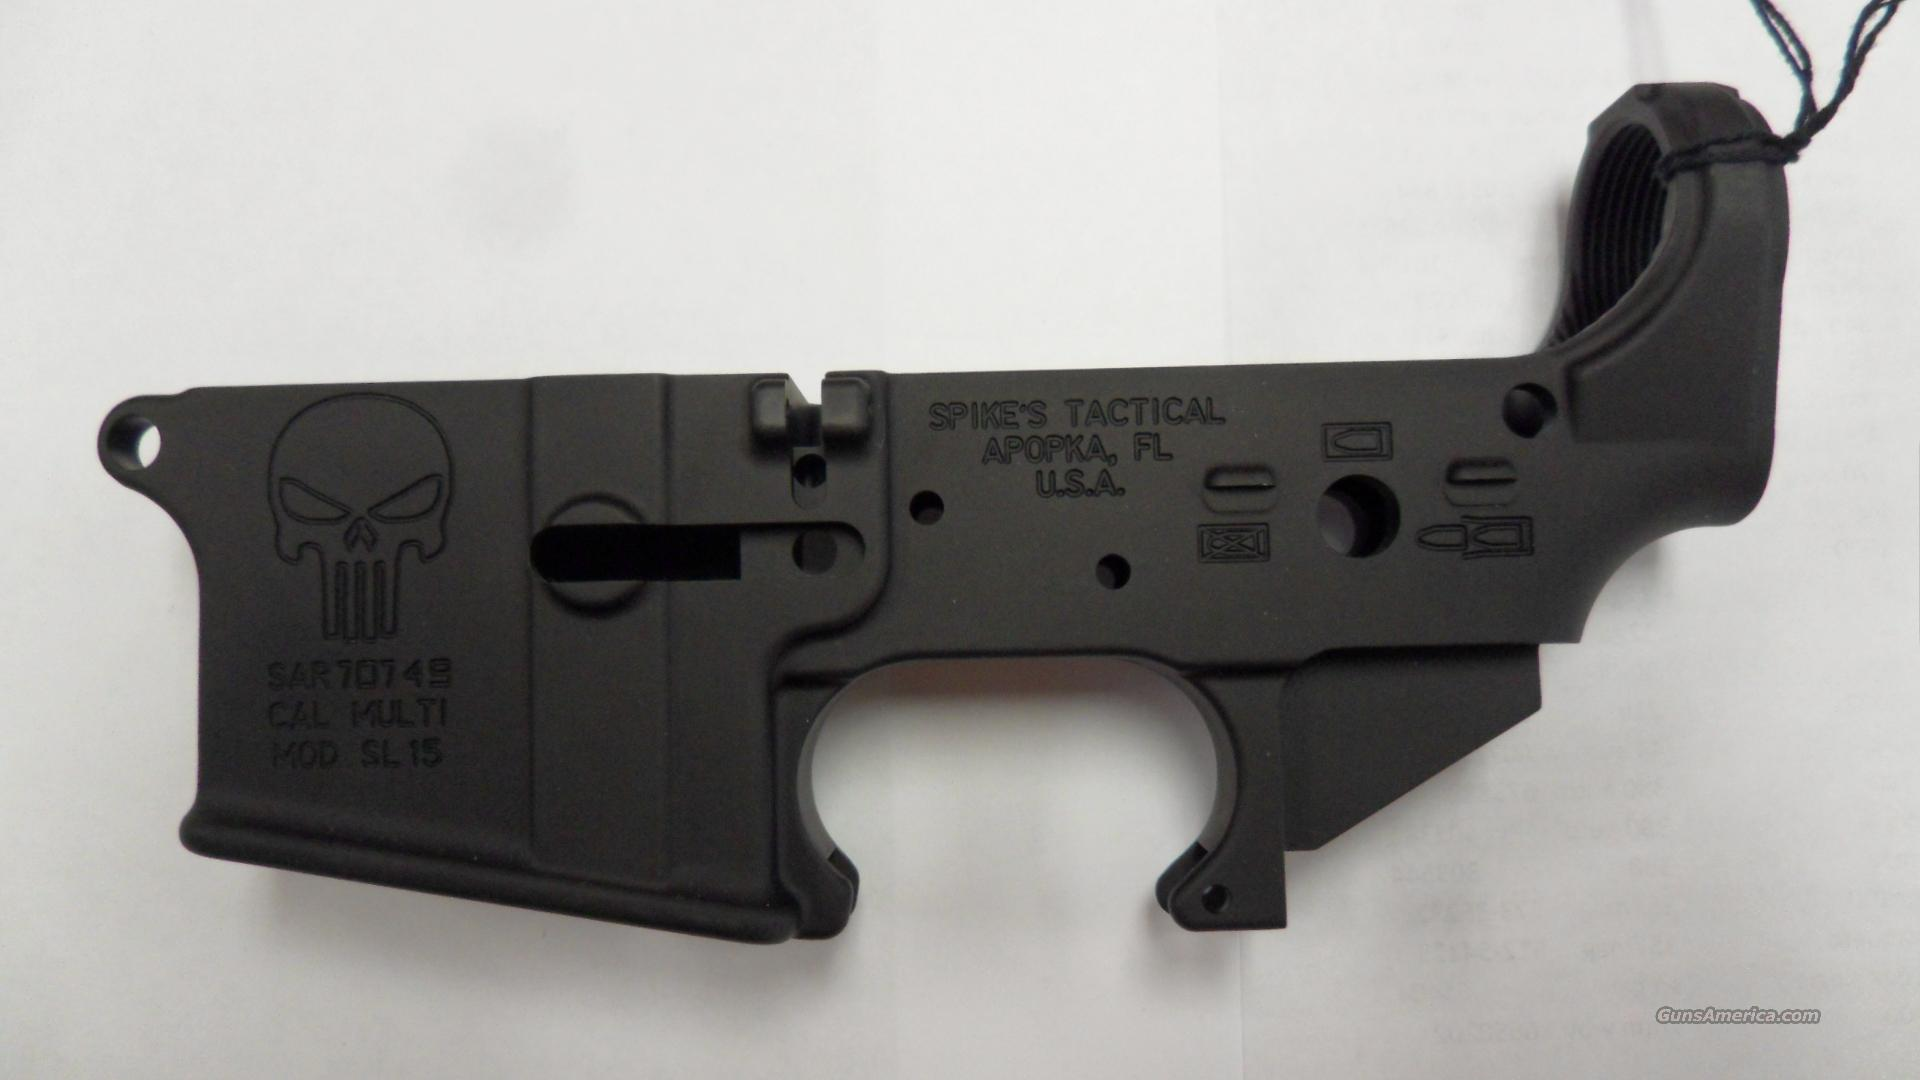 Spikes Tactical Receiver punisher skull  Guns > Rifles > AR-15 Rifles - Small Manufacturers > Lower Only